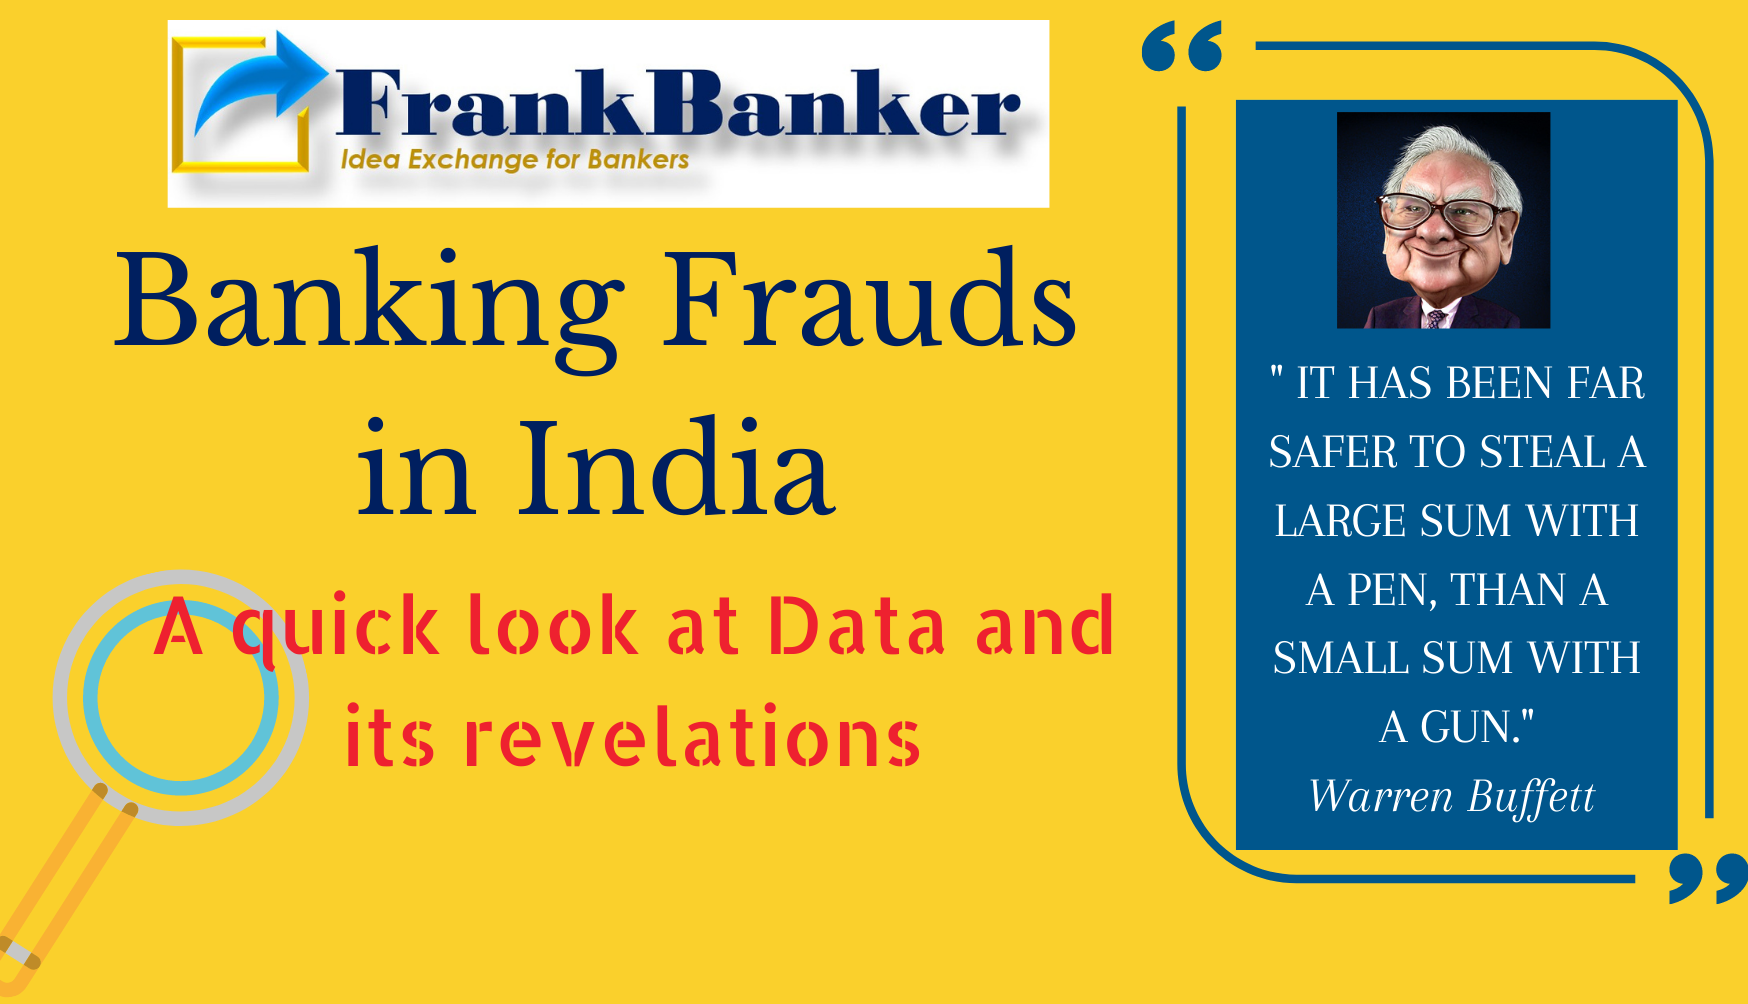 Banking Frauds in India: A look at Data and its revelations